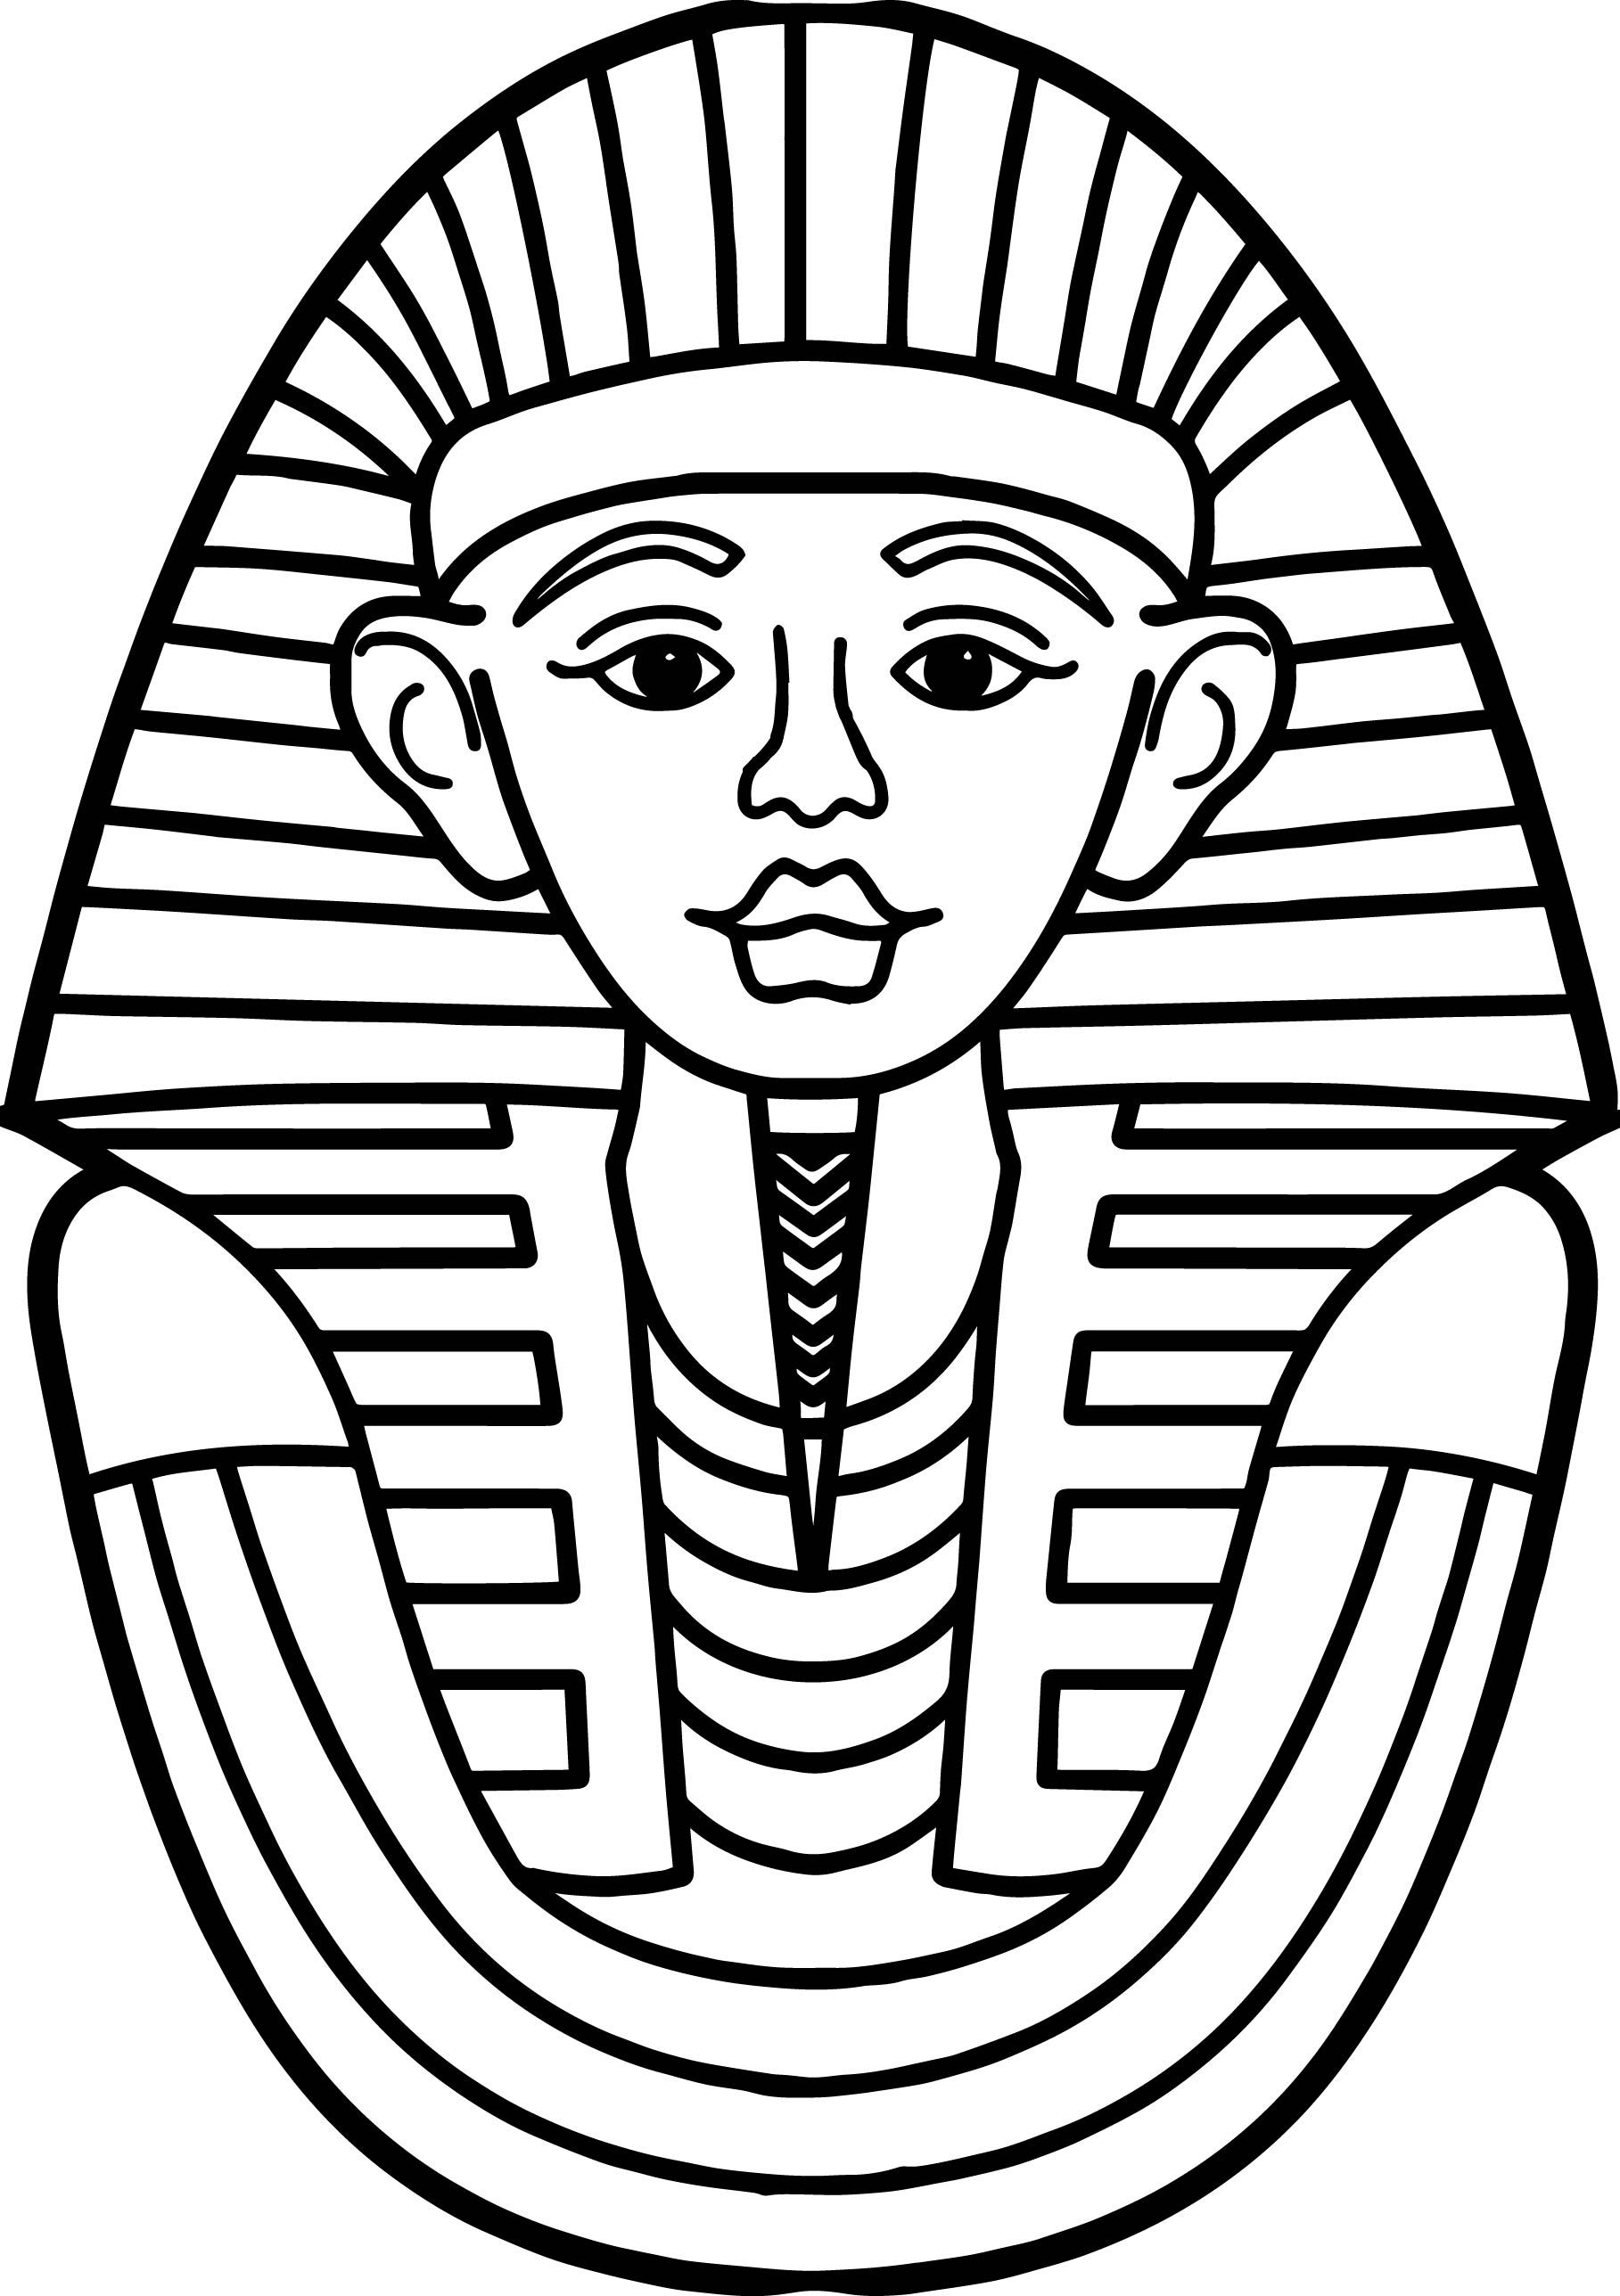 Awesome Ancient Egyptian Face Coloring Page Bible Coloring Pages Free Coloring Pages Coloring Pages Inspirational